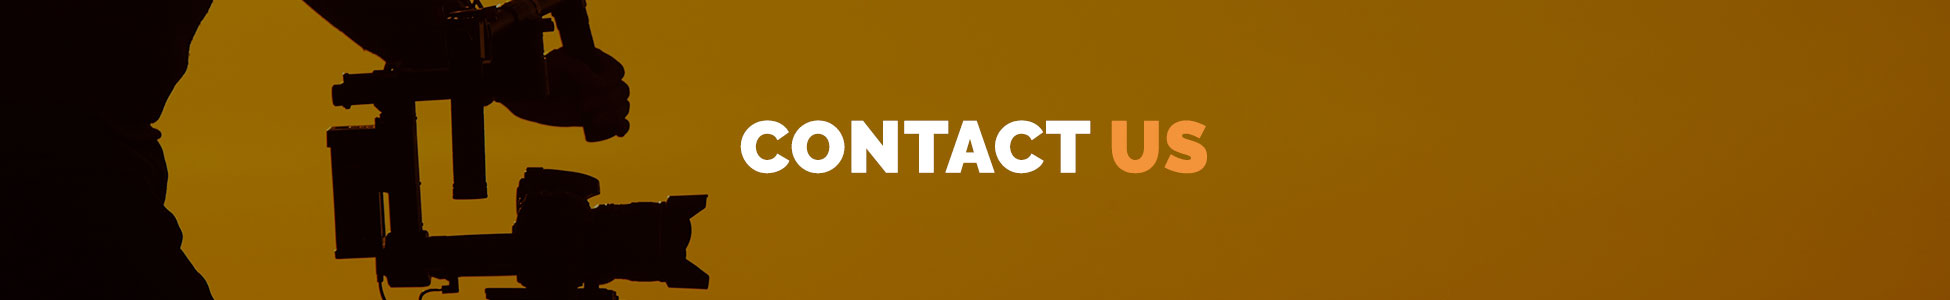 video creative contact information